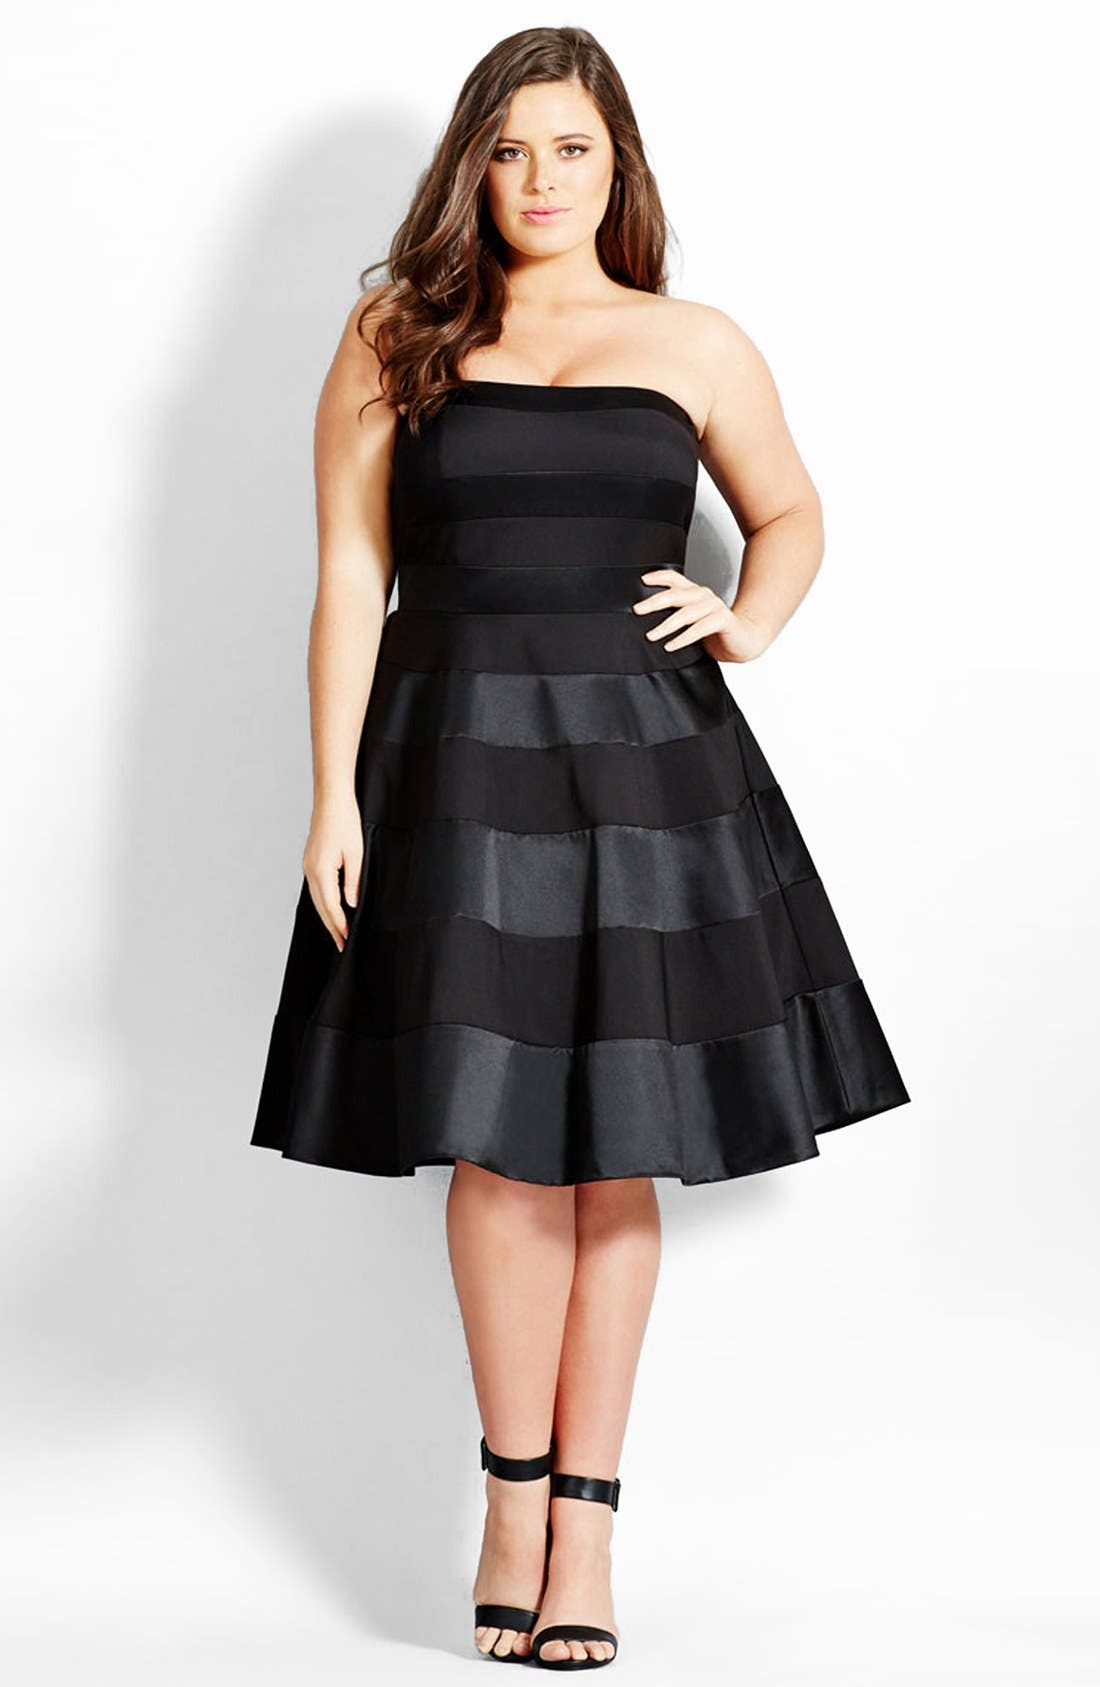 Alternate Image 1 Selected - City Chic 'Miss Shady' Stripe Strapless Fit & Flare Party Dress (Plus Size)